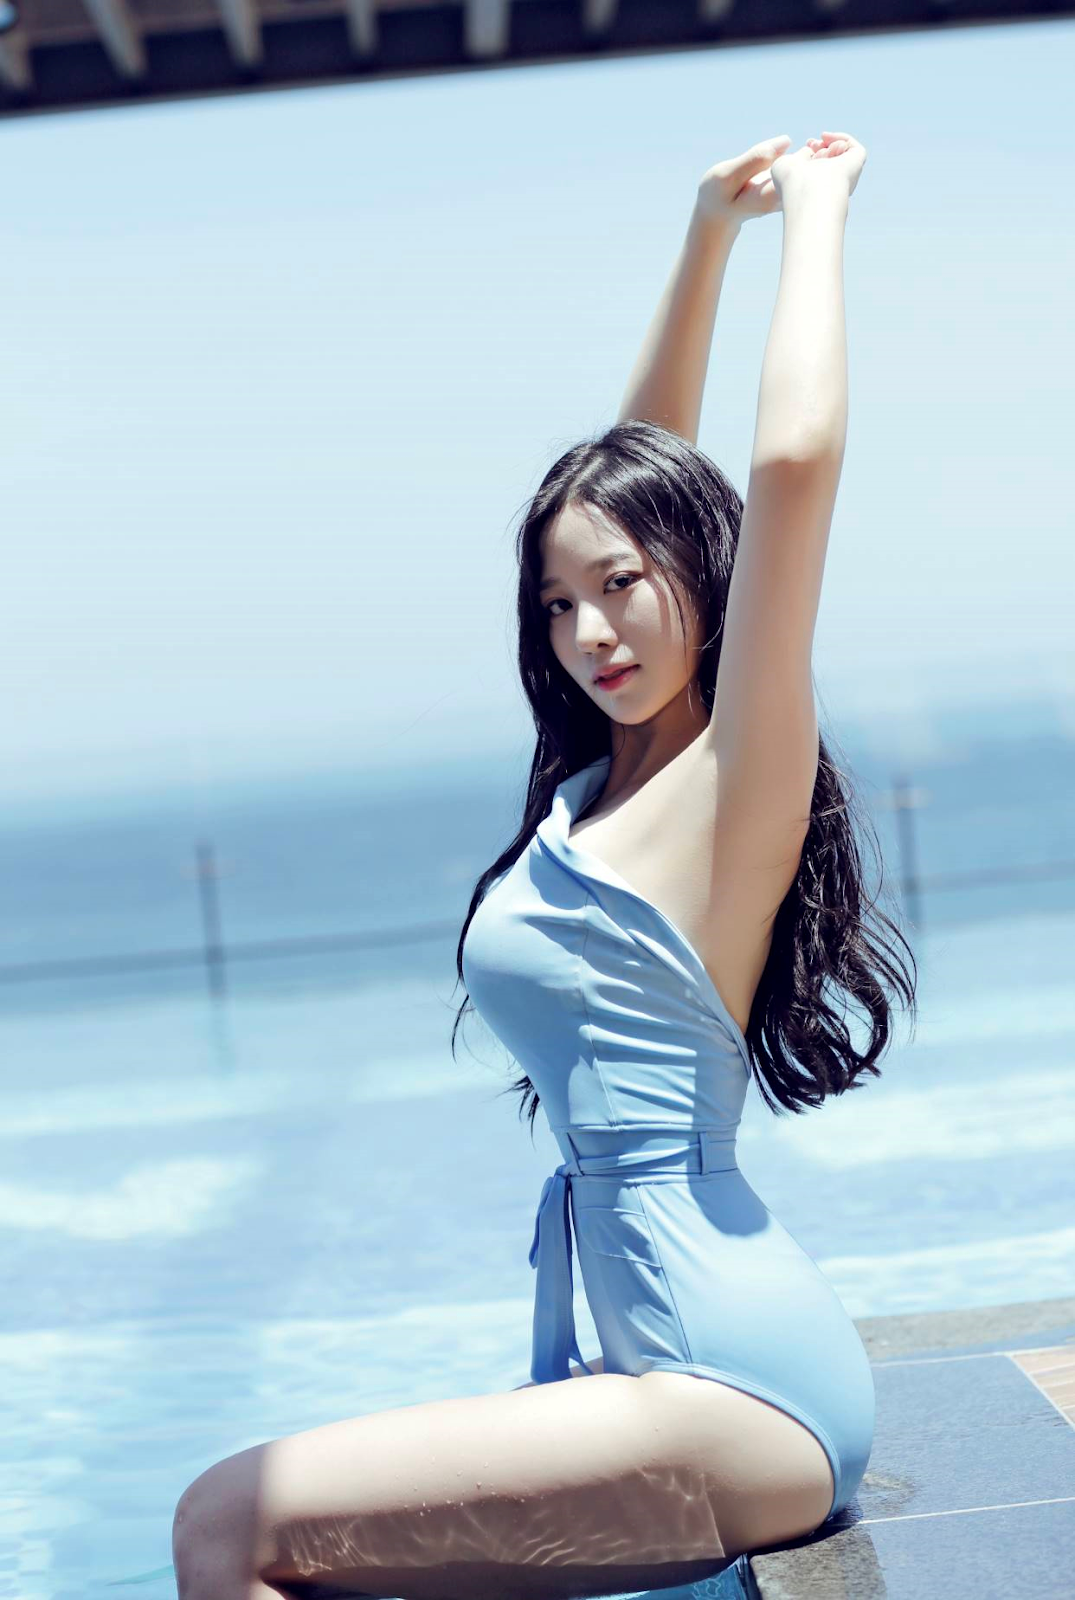 Top 7 Sexiest Photos Of Berry Goods Johyun  Daily K Pop -9196